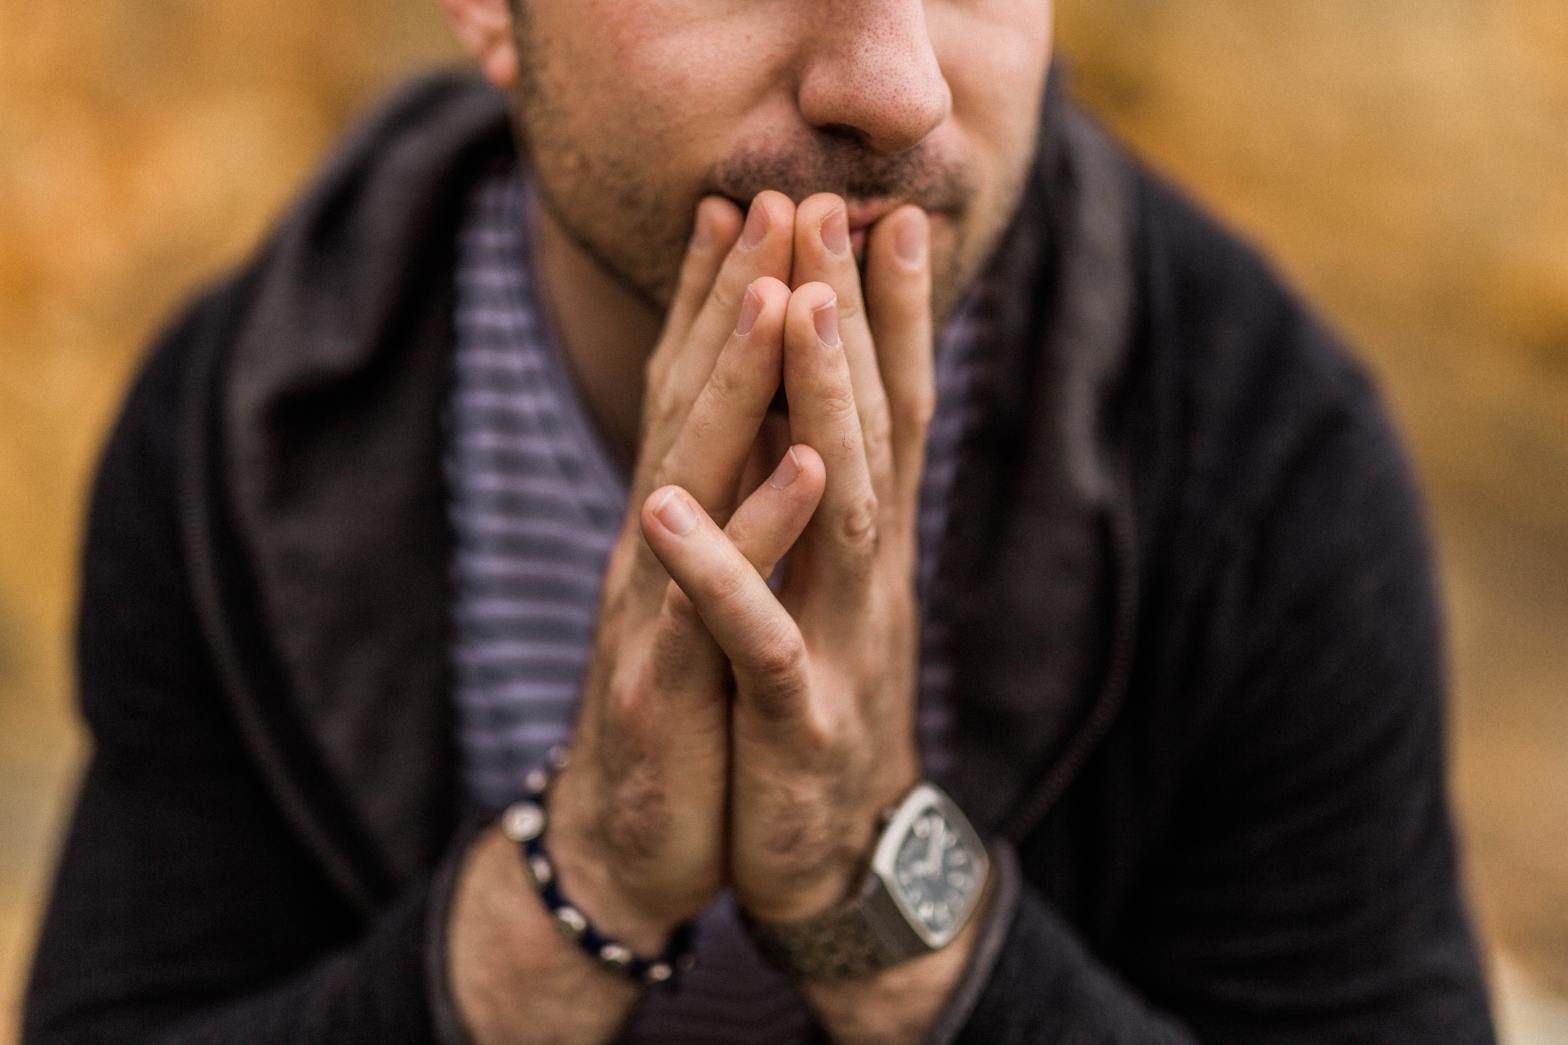 Man pressing his fingers to his lips worrying and overthinking